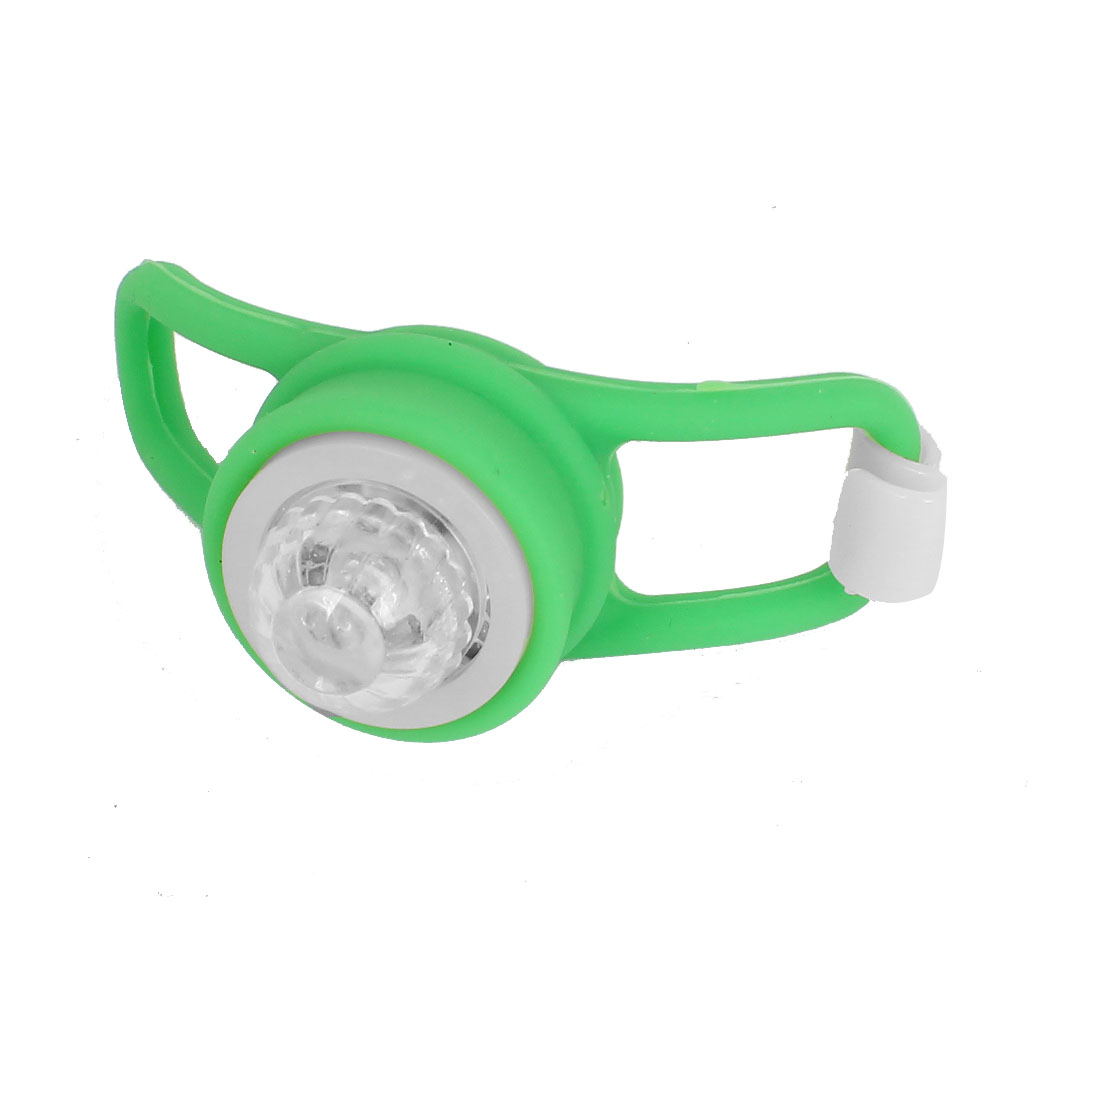 Bicycle Mountain Bike Cycle Silicone Flash Colorful LED Light Lamp Green